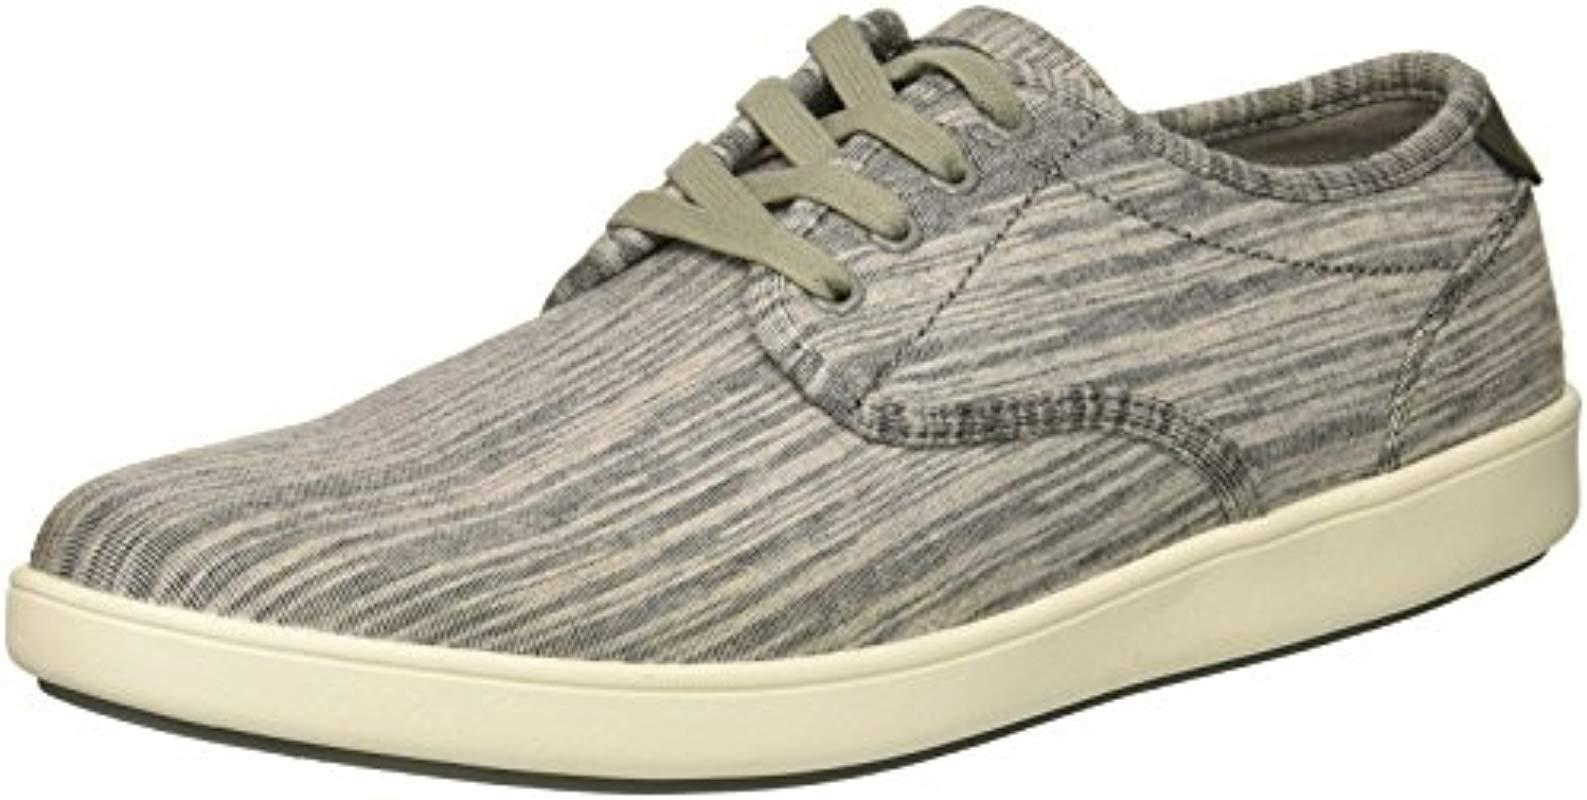 00d047d10ec Lyst - Steve Madden Fandom Sneaker in Gray for Men - Save ...